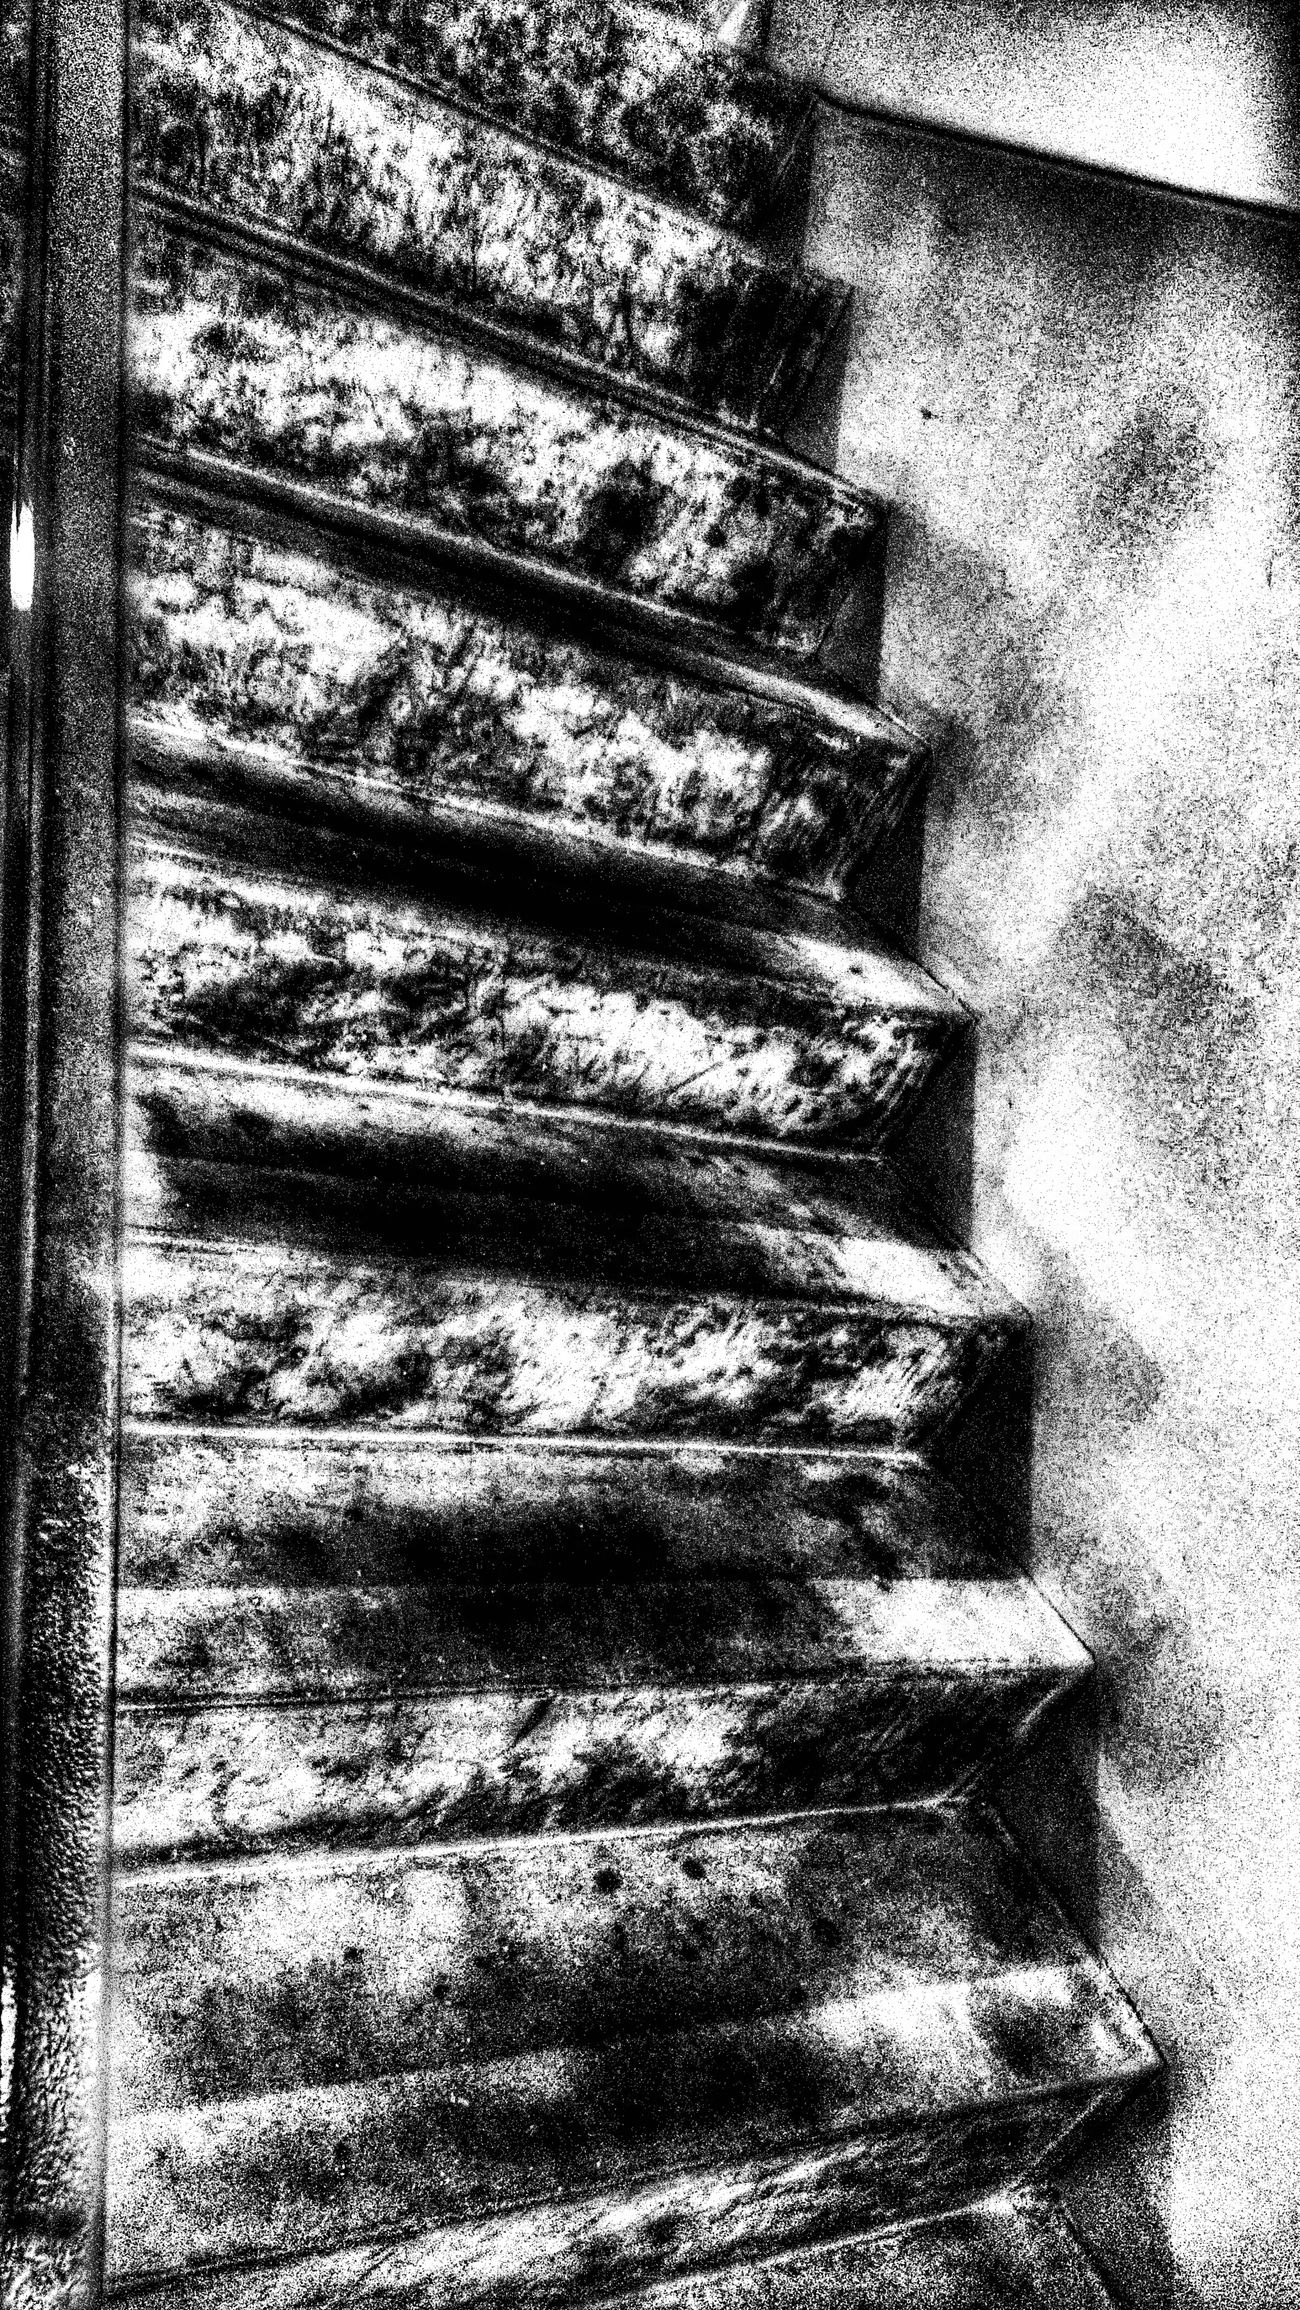 It was one beautiful step up towards your ivory tower or was it one ugly fall from a delusional pedestal? The Impurist Black And White Stairways Walk This Way Twisted Dream Darkness And Light My Bw Obsession Perspective Notes From The Underground? Notes From The Roof?